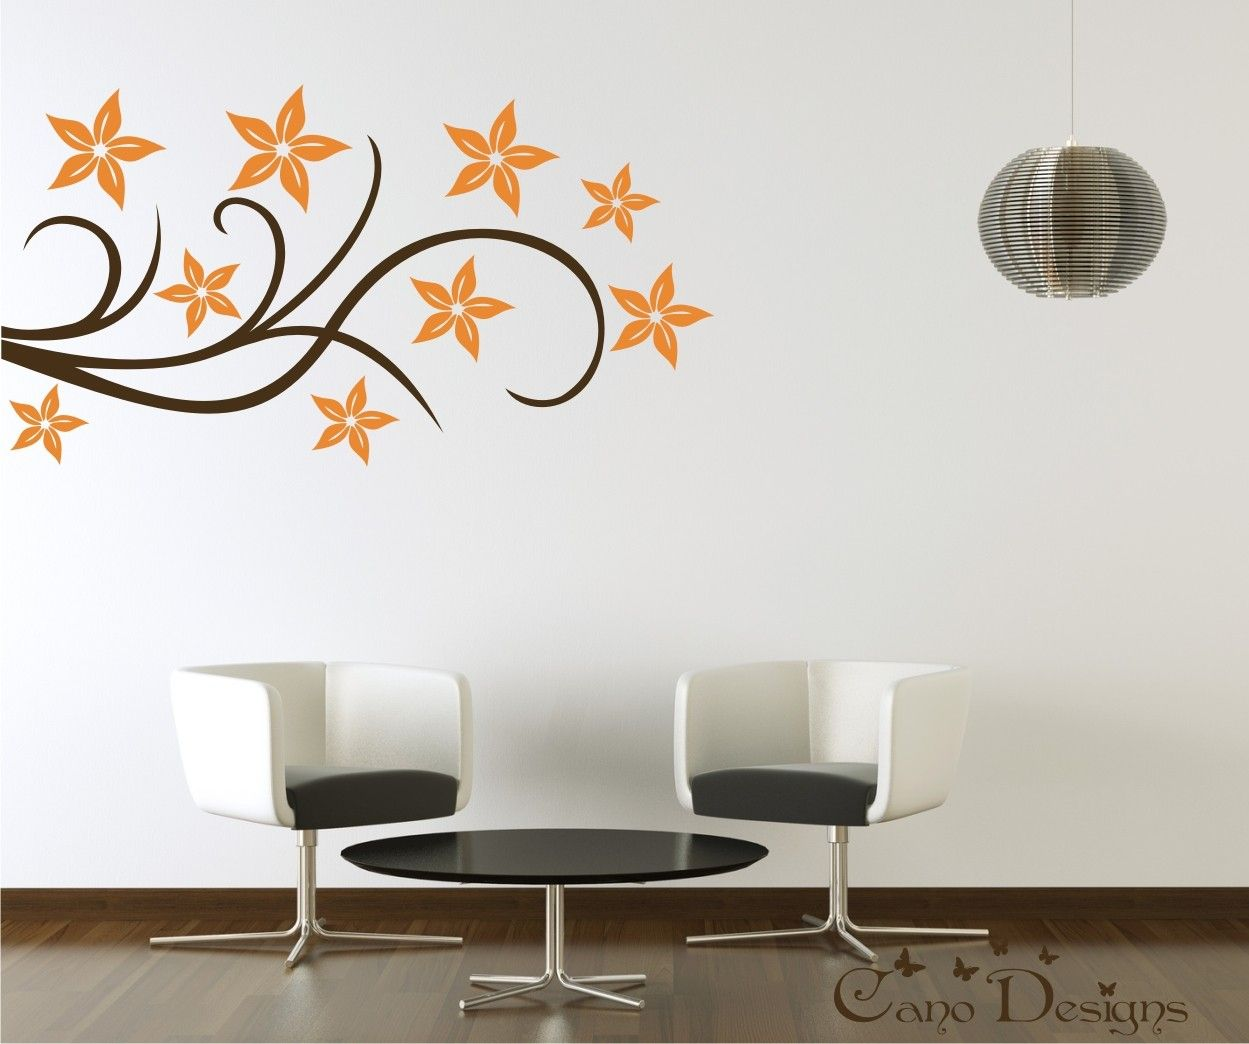 stylish modern wall decor stickers art decals - Wall Designs Stickers